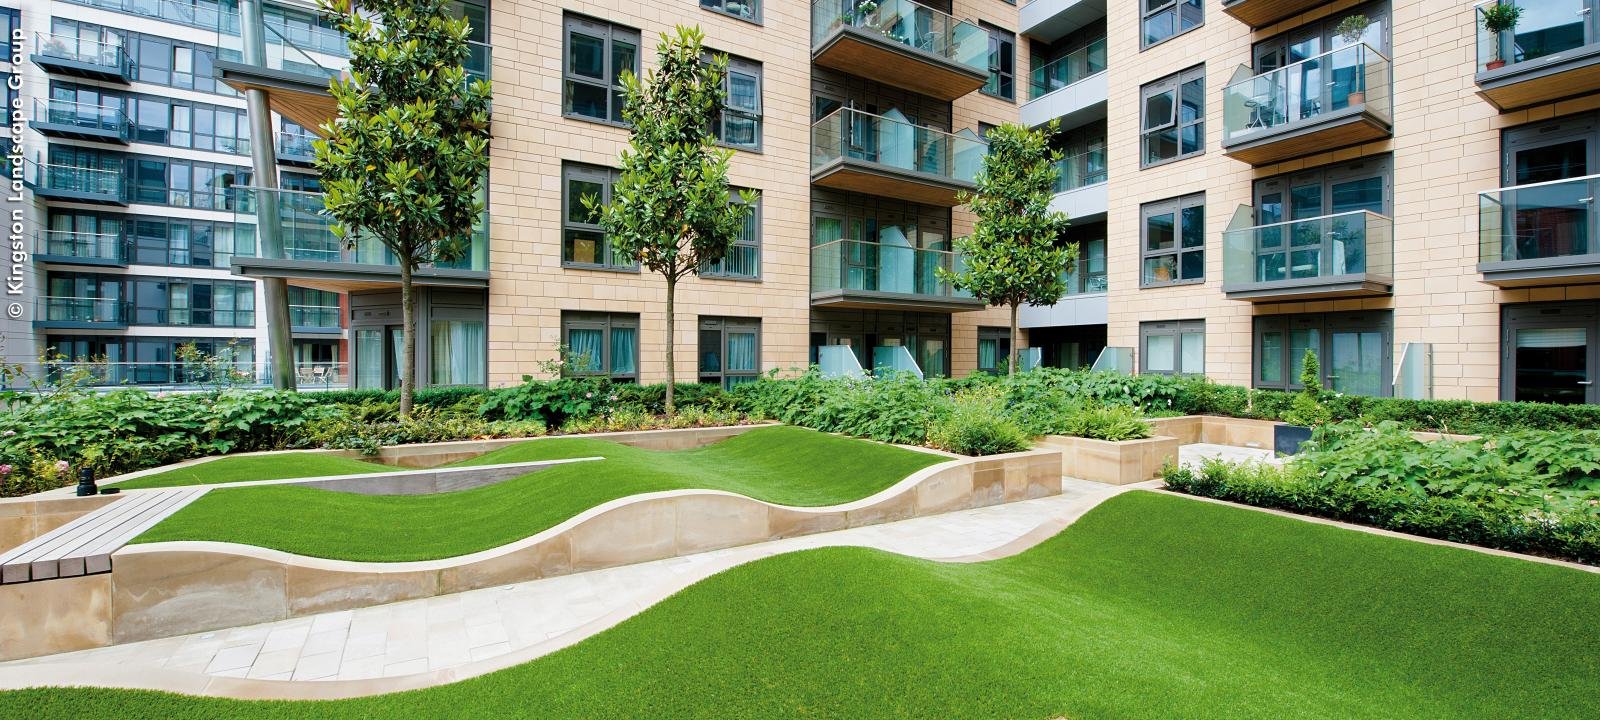 Courtyard with rolling mounds made from grass surrounded by residential blocks